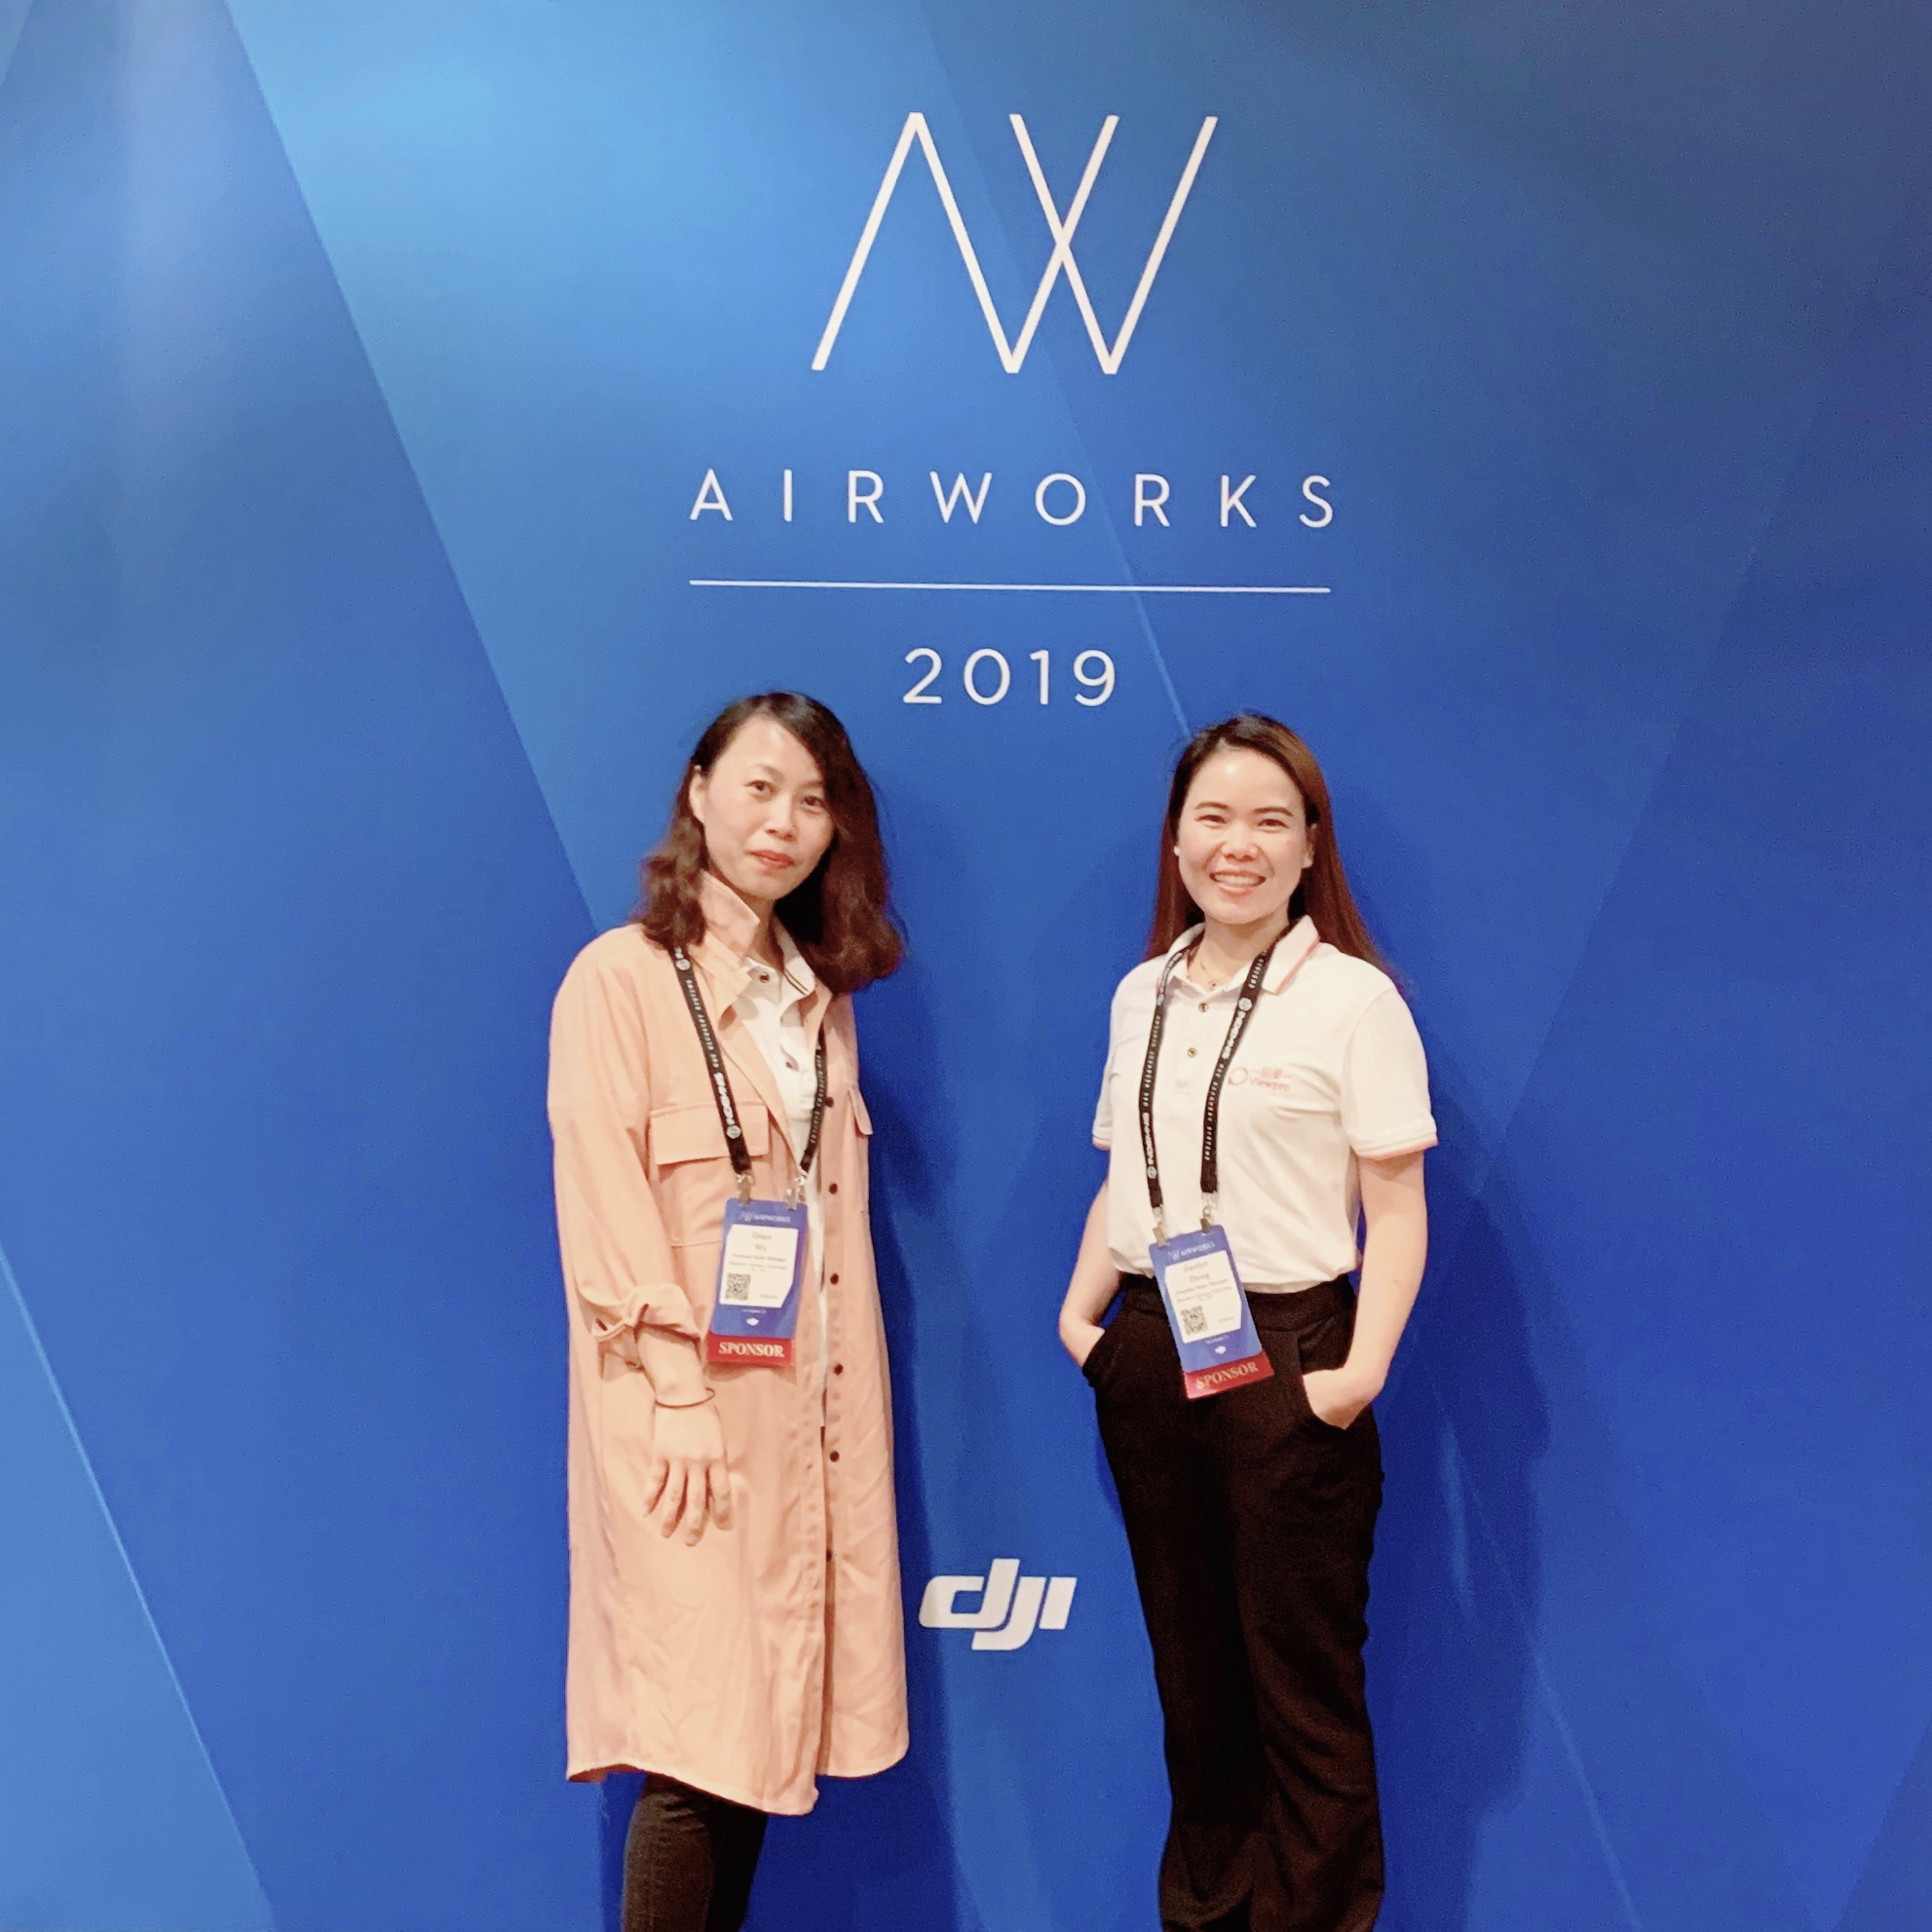 Successfully participated the 4th DJI AirWorks 2019 in LA last week (Sep. 24th~26th).